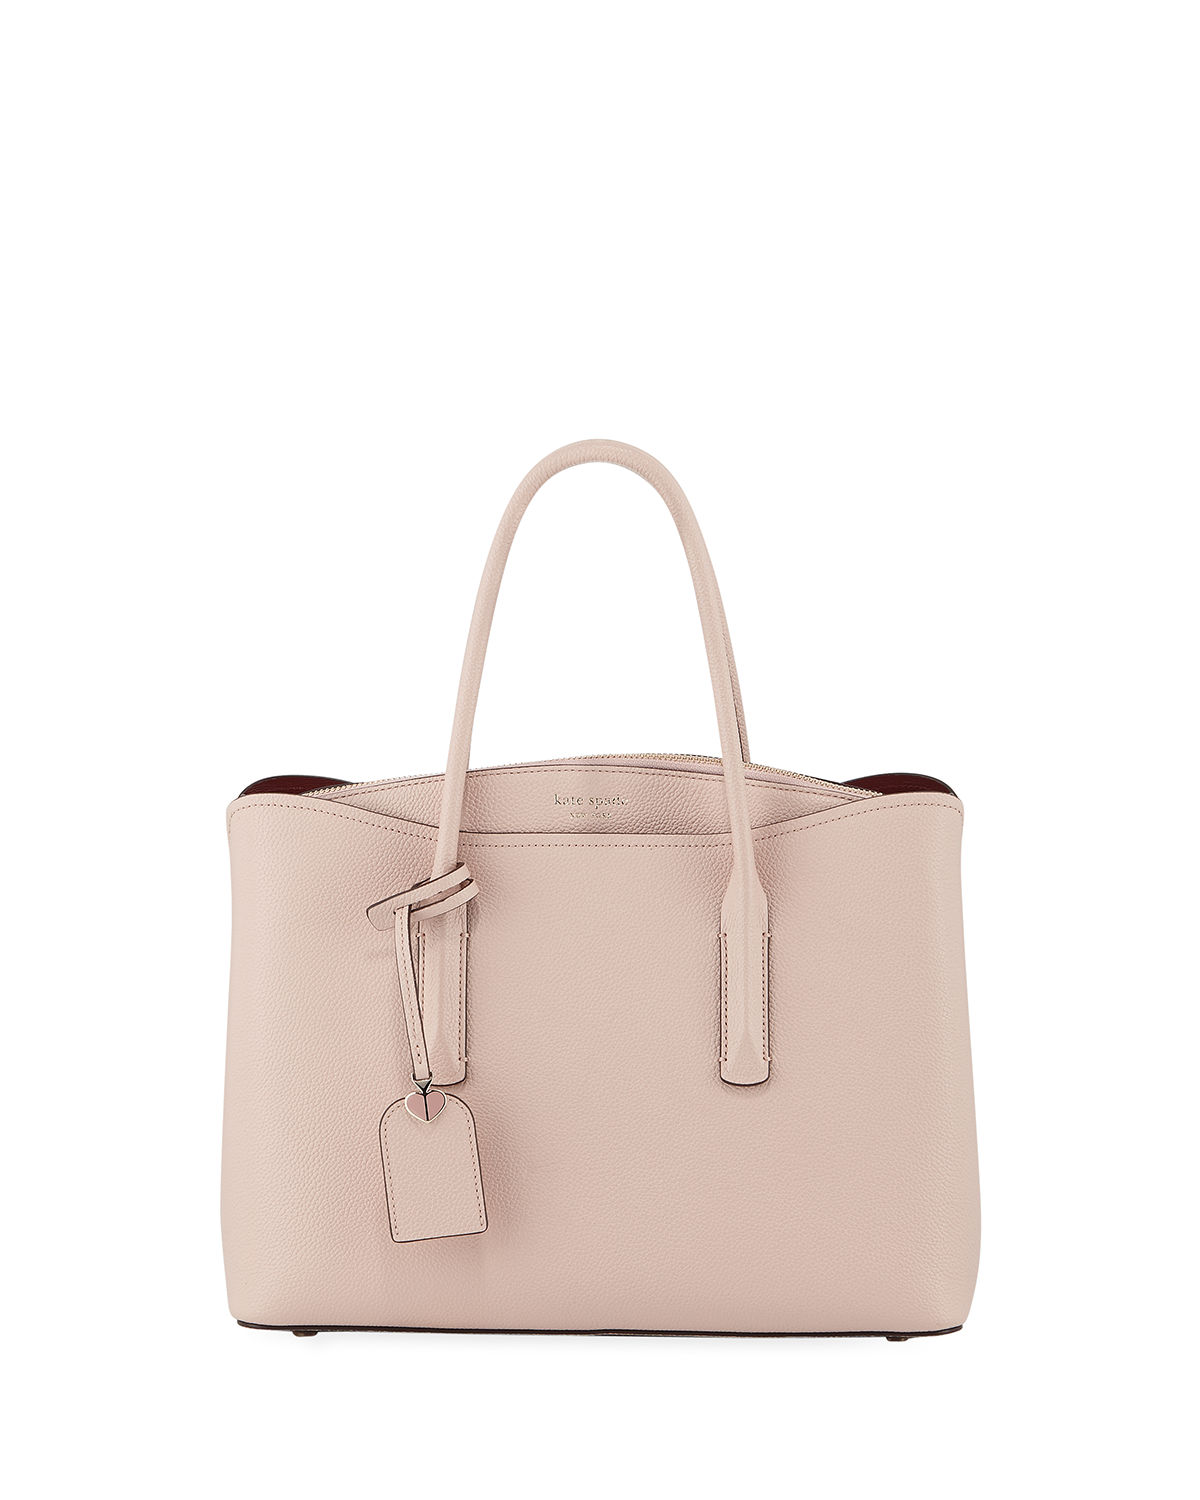 304b68687b1 kate spade new york margaux large leather satchel bag